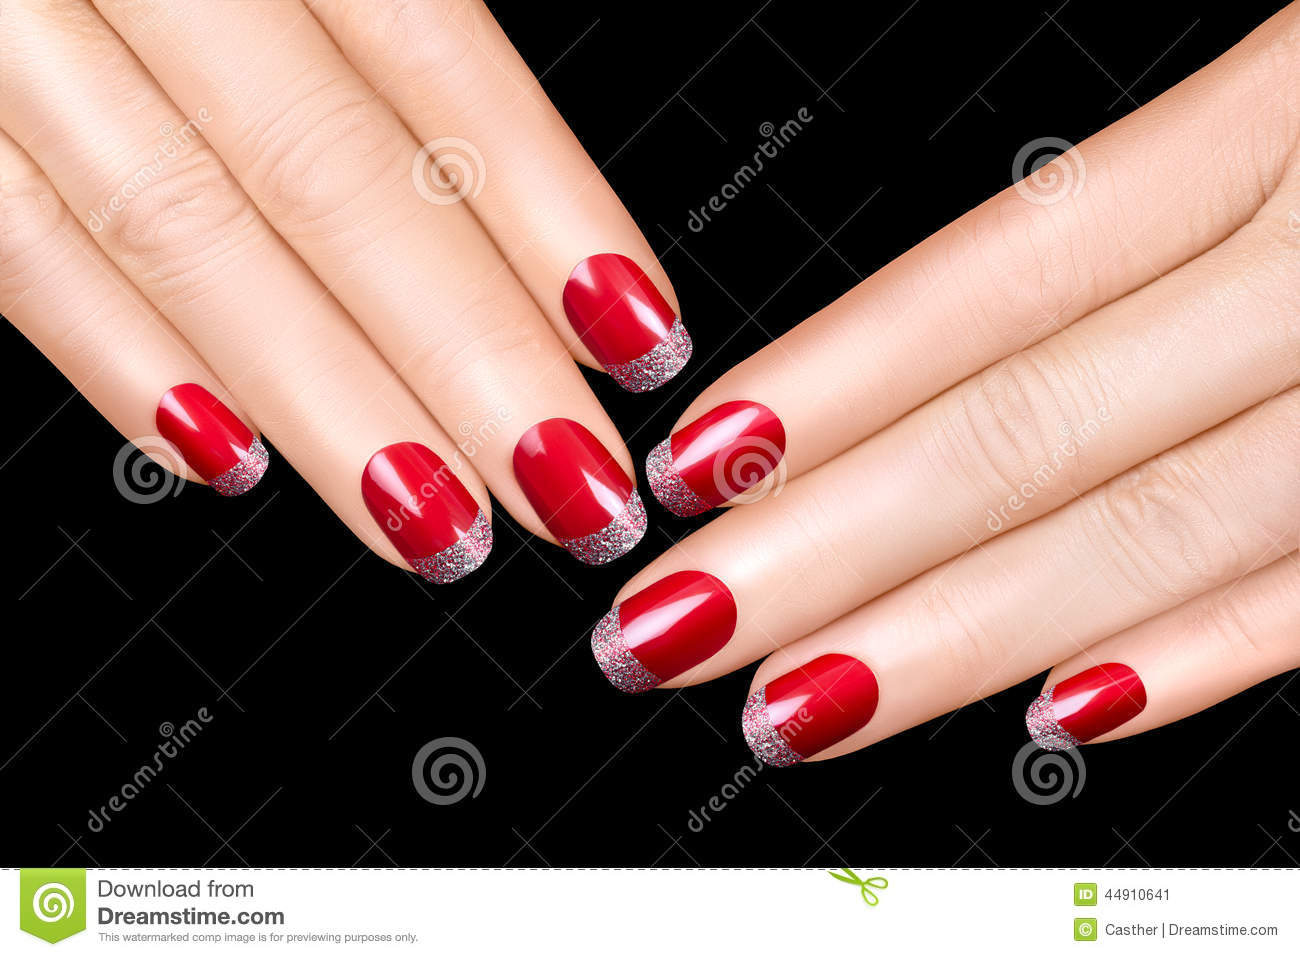 Nail art luxury nail polish nail stickers stock photo image royalty free stock photo download nail art luxury nail polish prinsesfo Choice Image